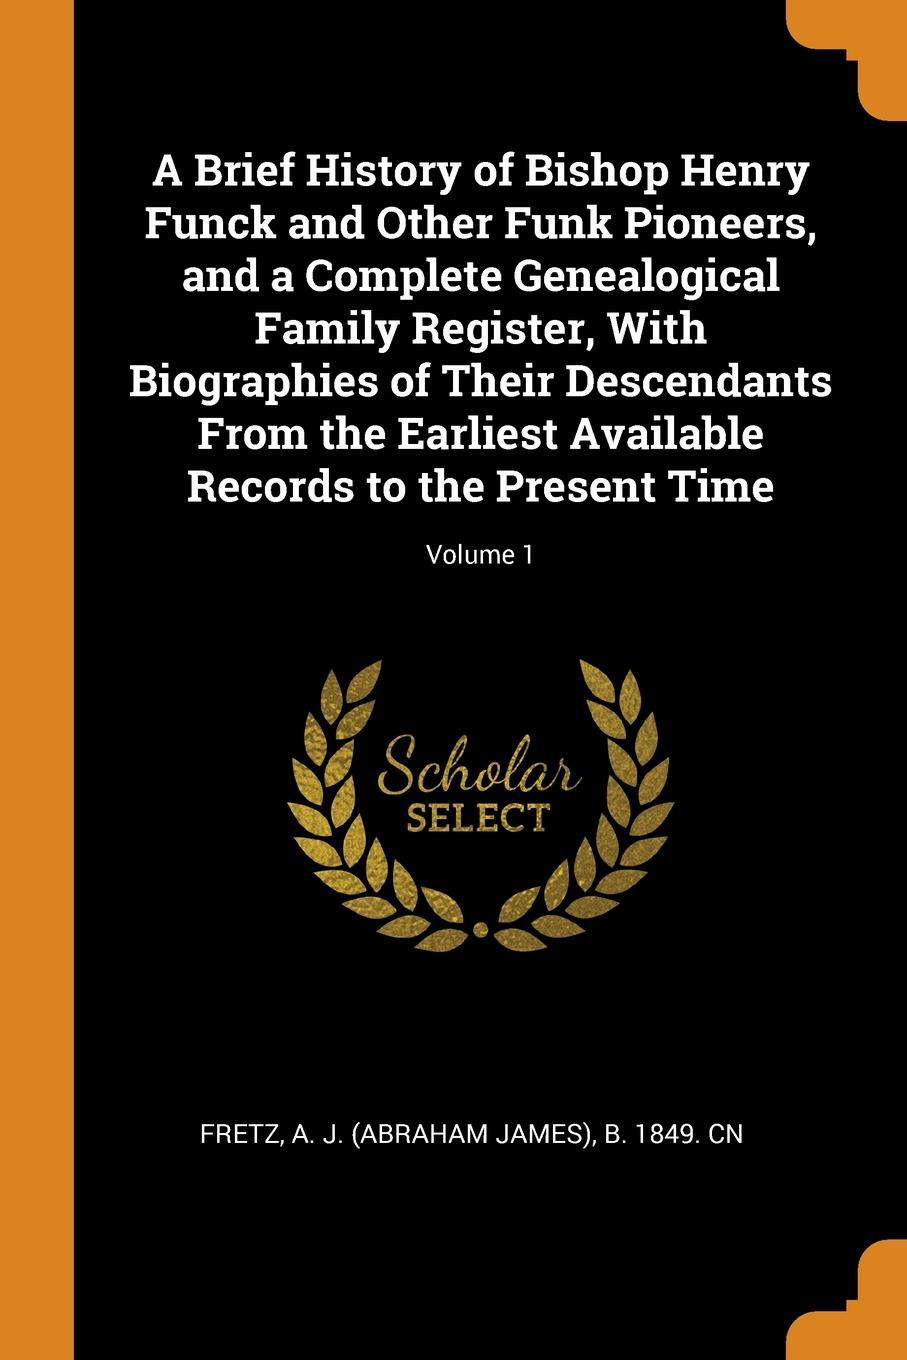 A Brief History of Bishop Henry Funck and Other Funk Pioneers, and a Complete Genealogical Family Register, With Biographies of Their Descendants From the Earliest Available Records to the Present Time; Volume 1 william abbatt a history of the united states and its people from their earliest records to the present time volume 6